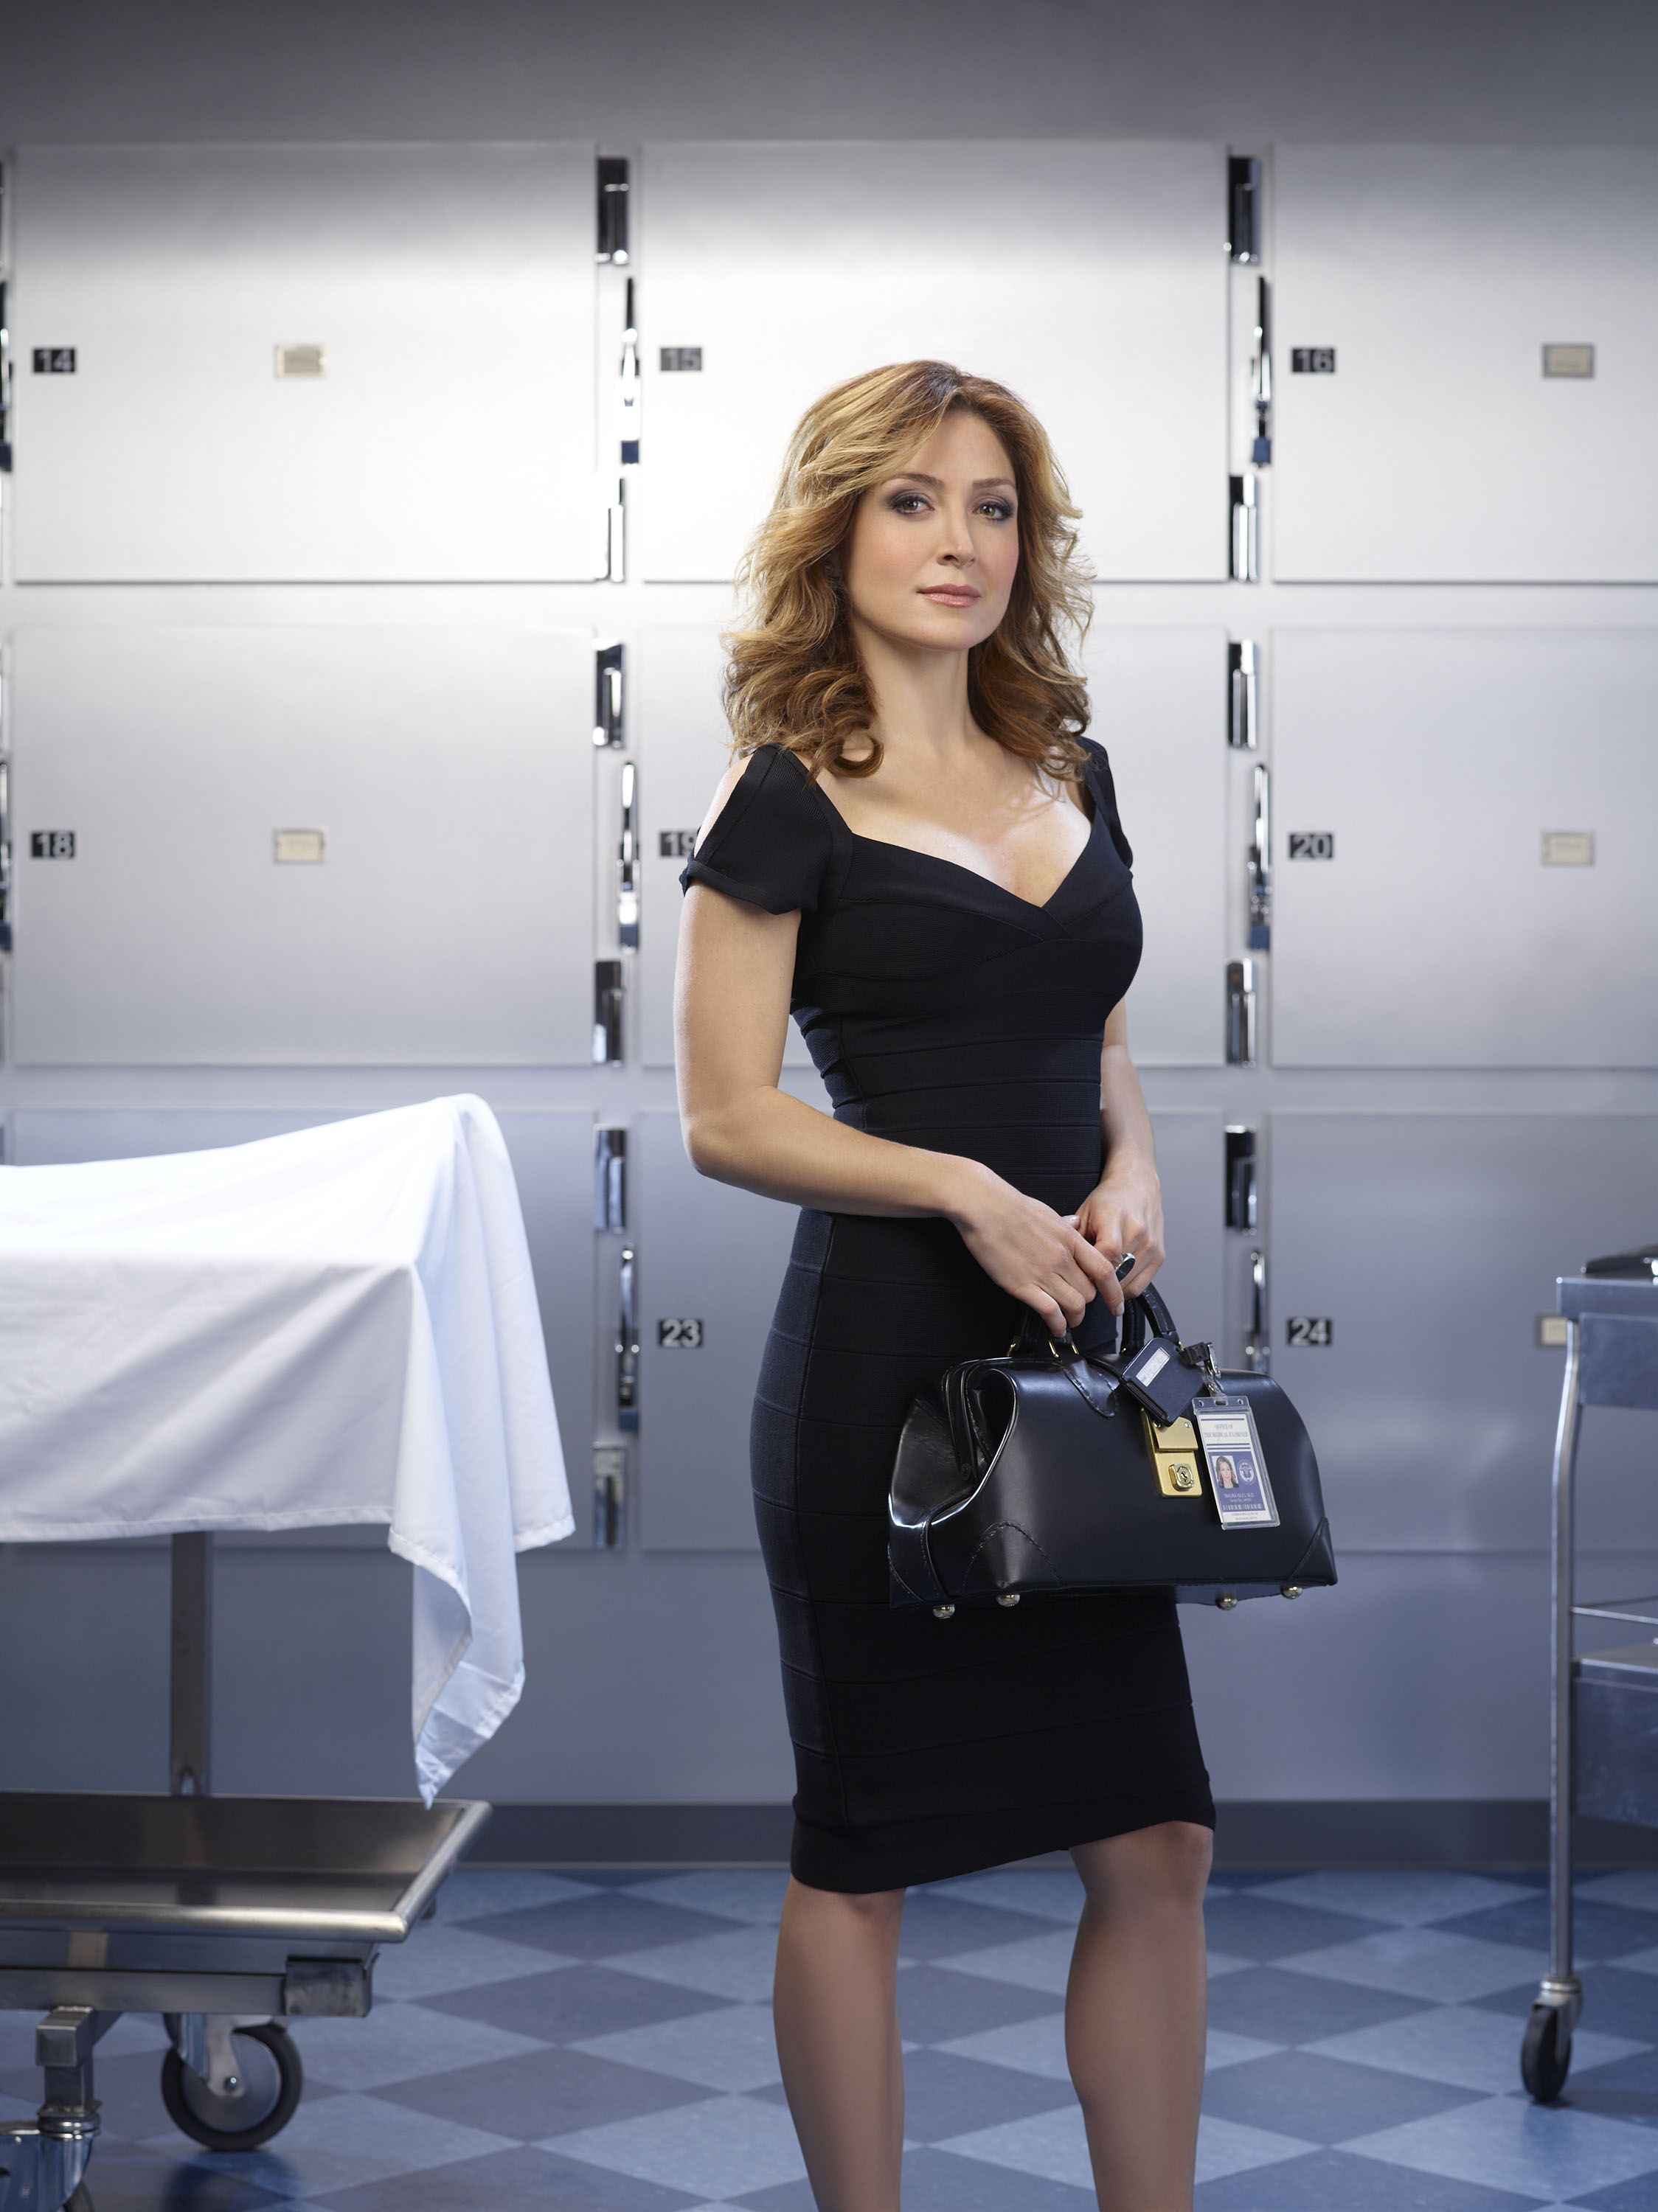 rizzoli and isles photo gallery | Index of /link-gallery/albums